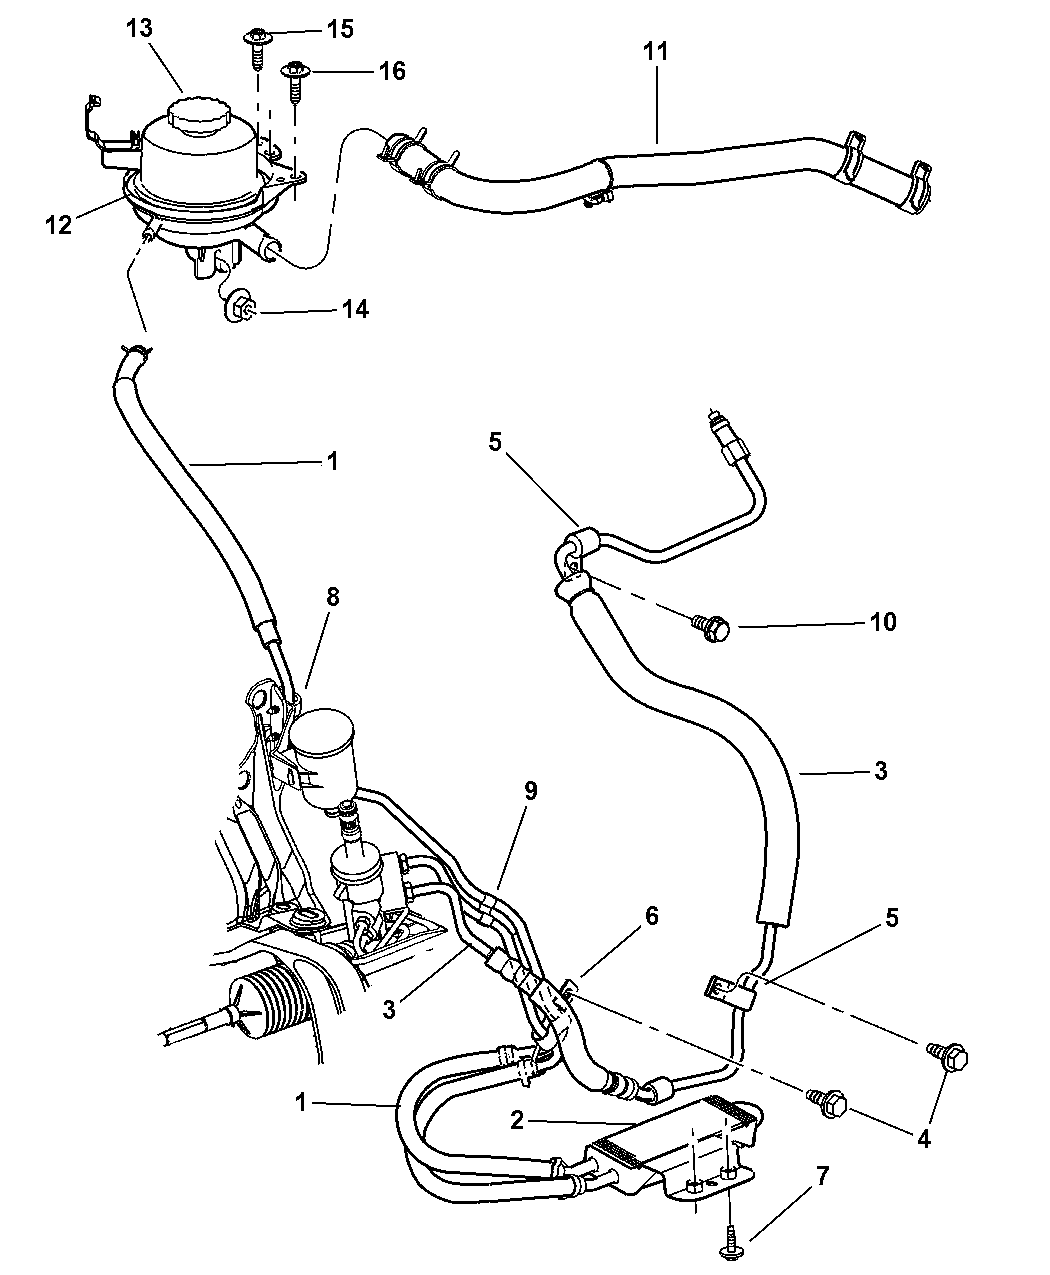 2002 Chrysler Town & Country Power Steering Hoses